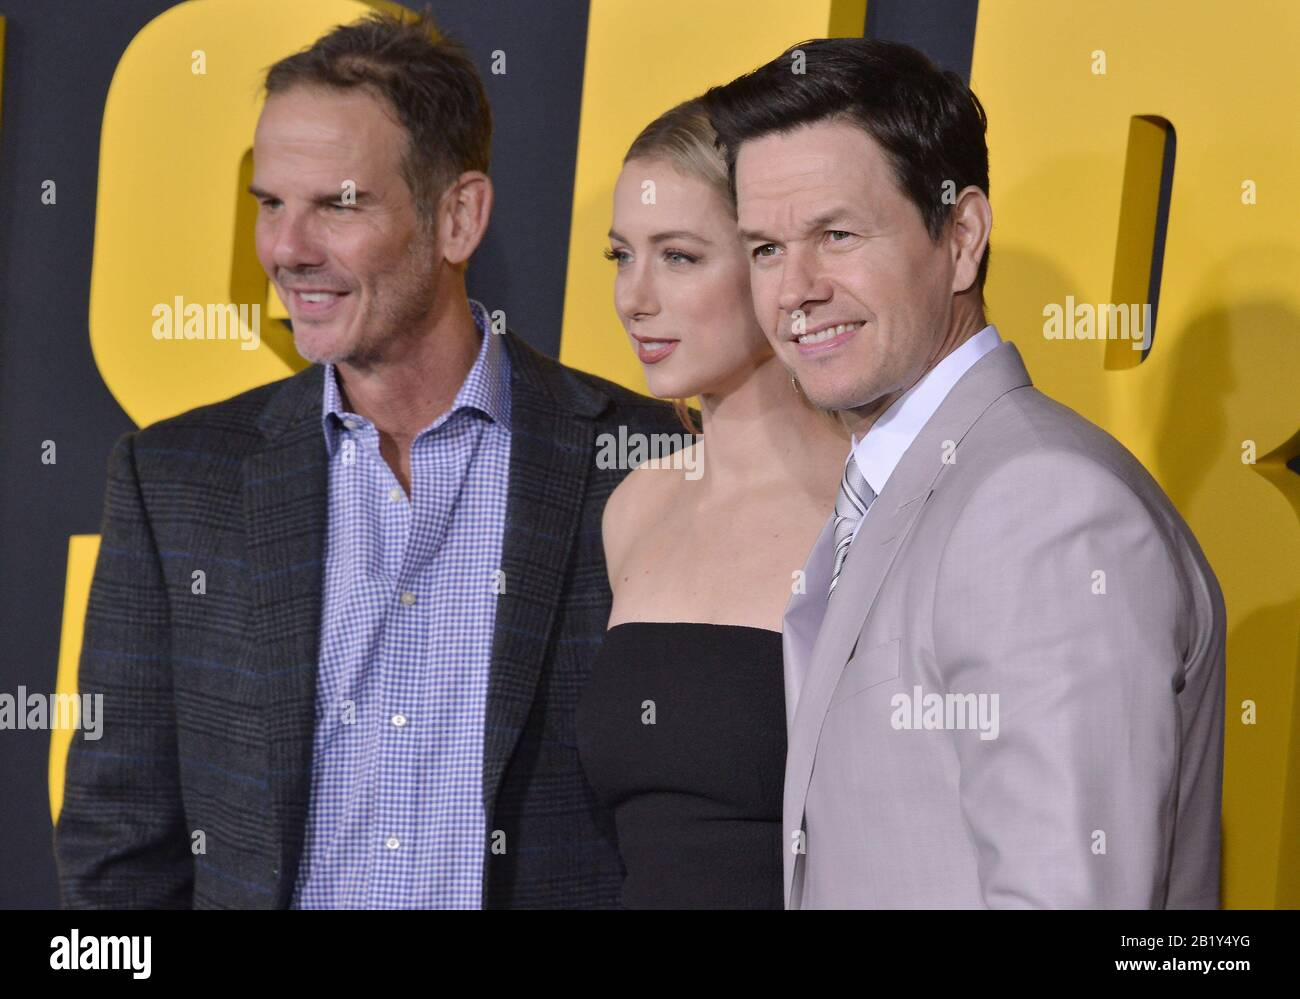 Los Angeles Usa 27th Feb 2020 L R Director Peter Berg Iliza Shlesinger And Mark Wahlberg At The Netflix S Spenser Confidential Premiere Held At The Regency Village Theatre In Westwood Ca On Thursday